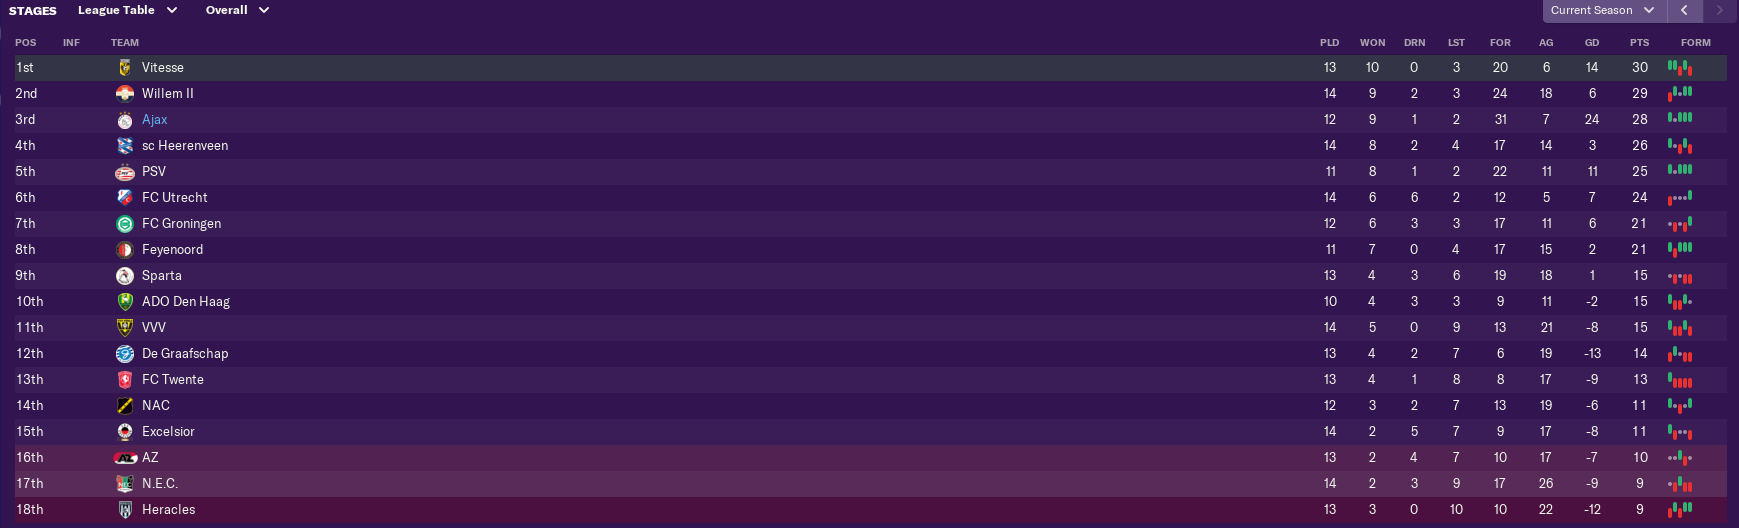 october-league-table.png